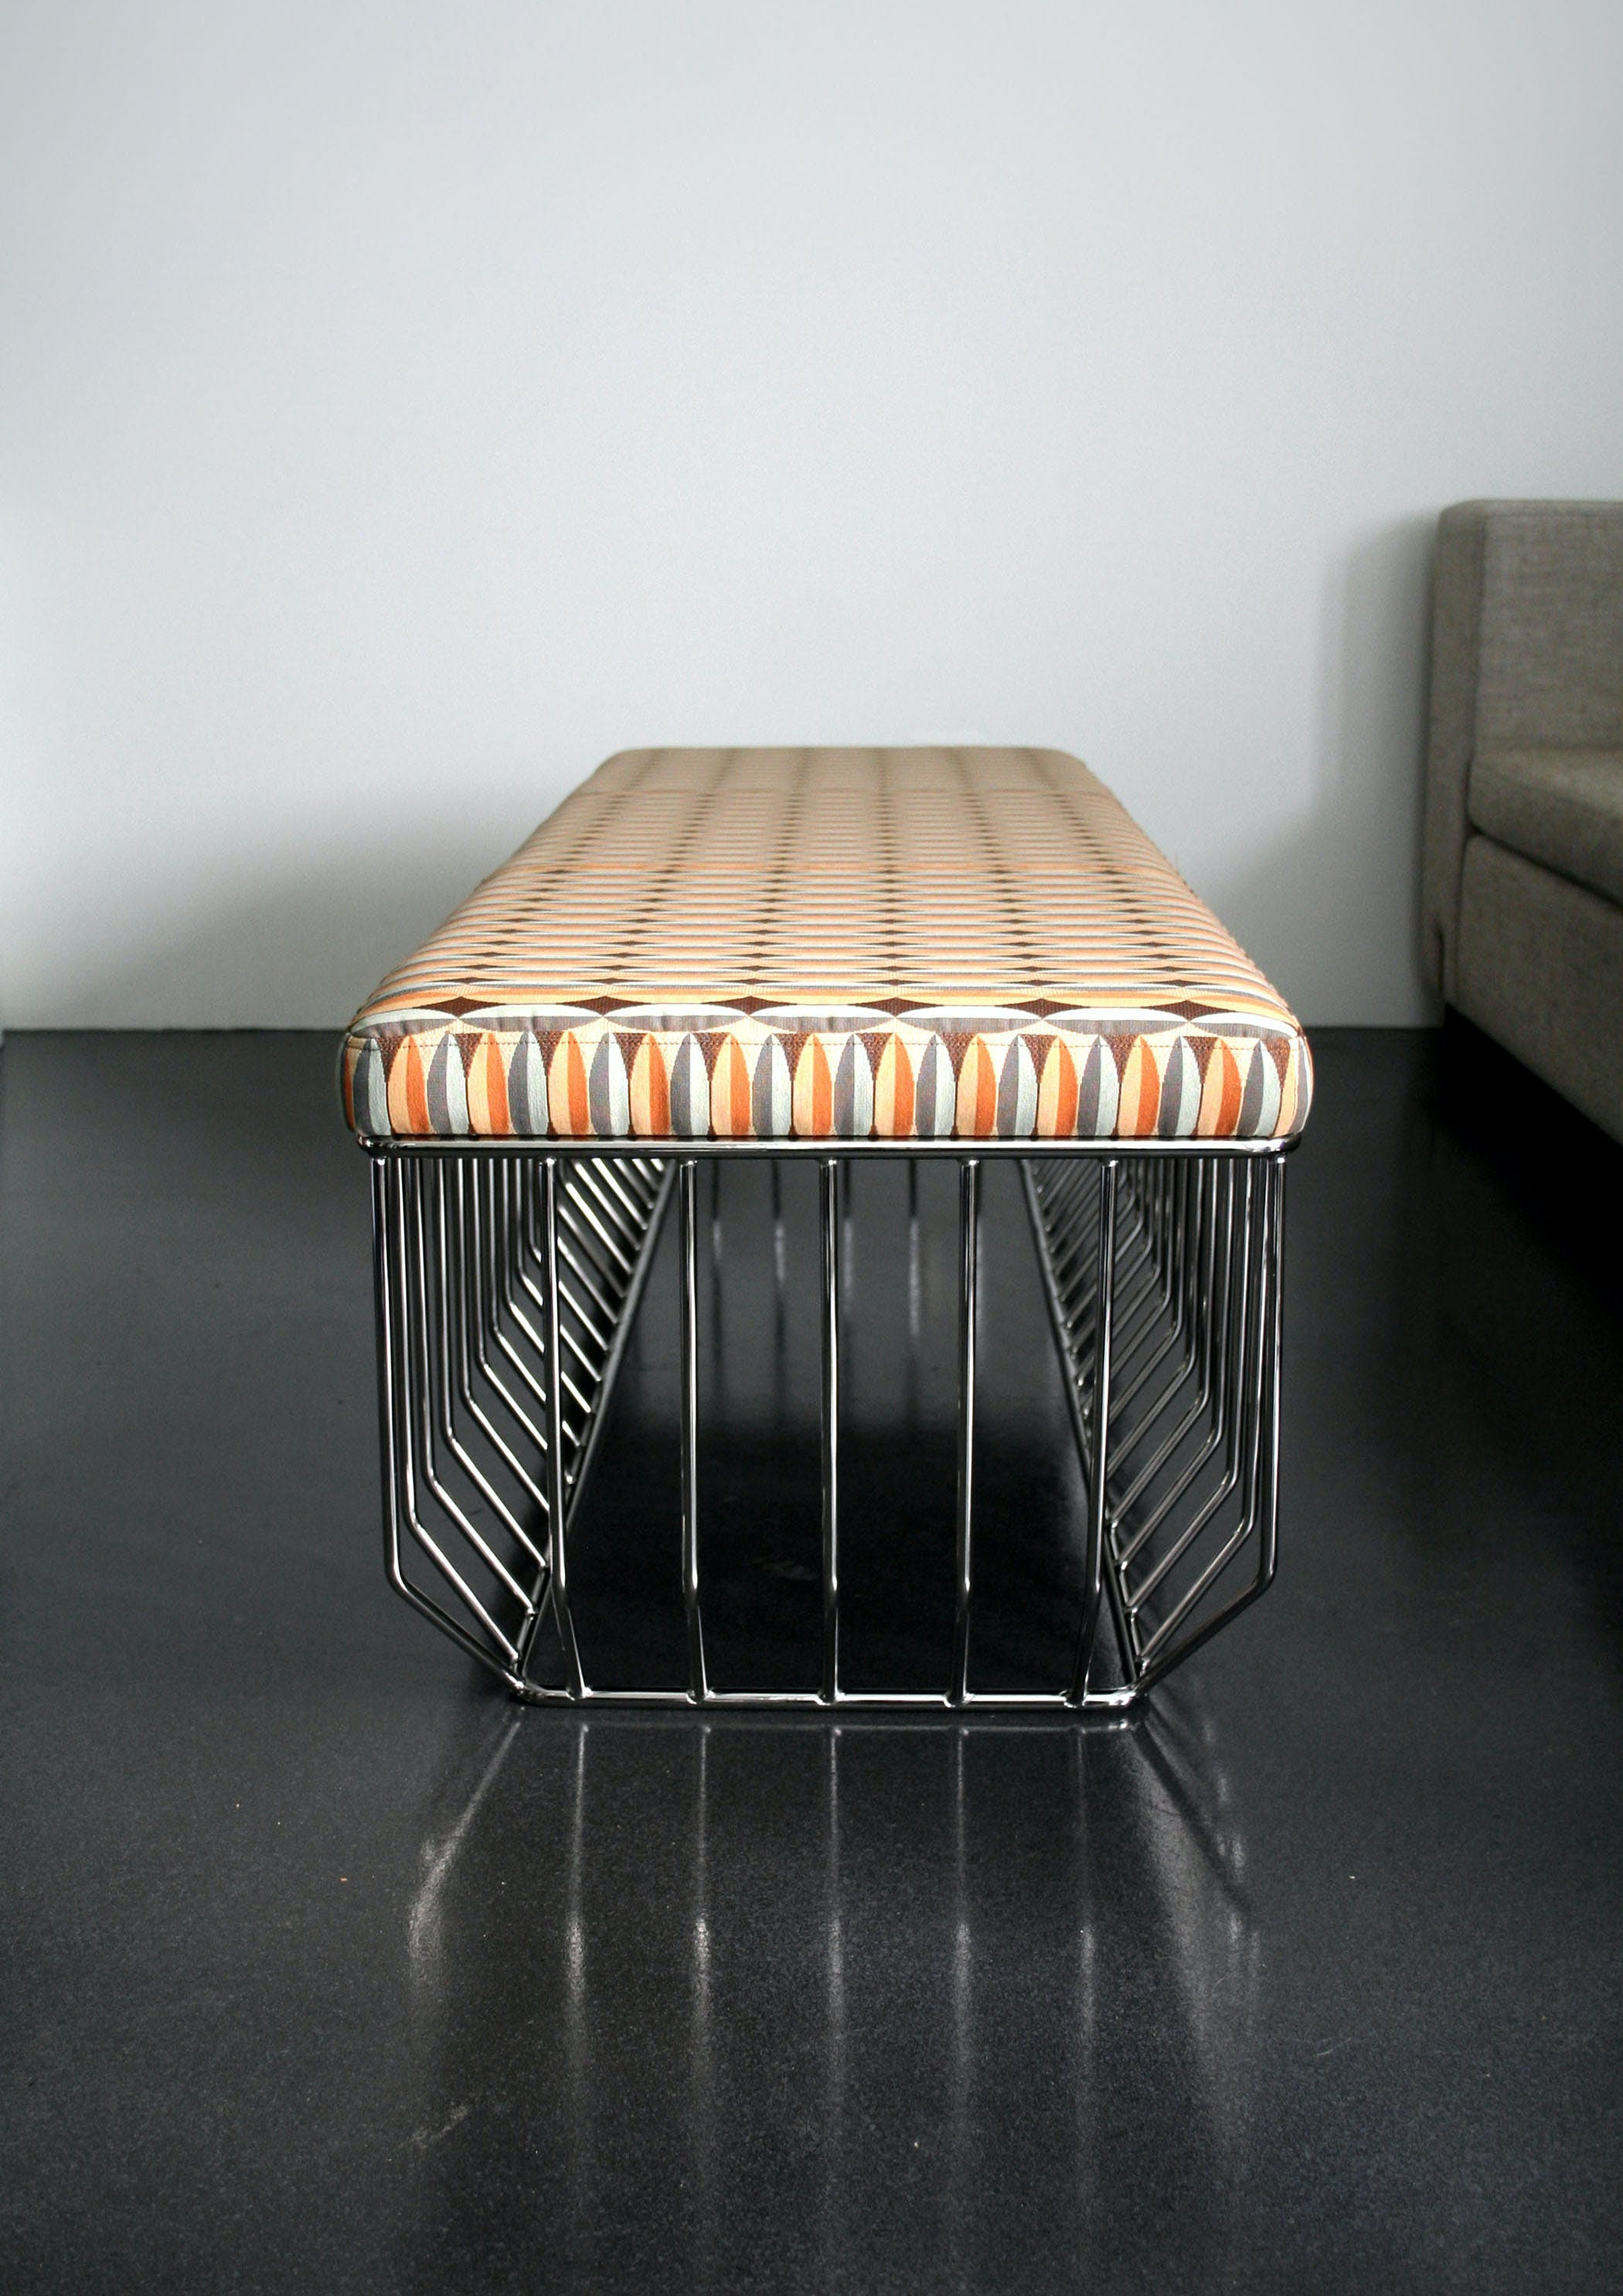 Wired Bench